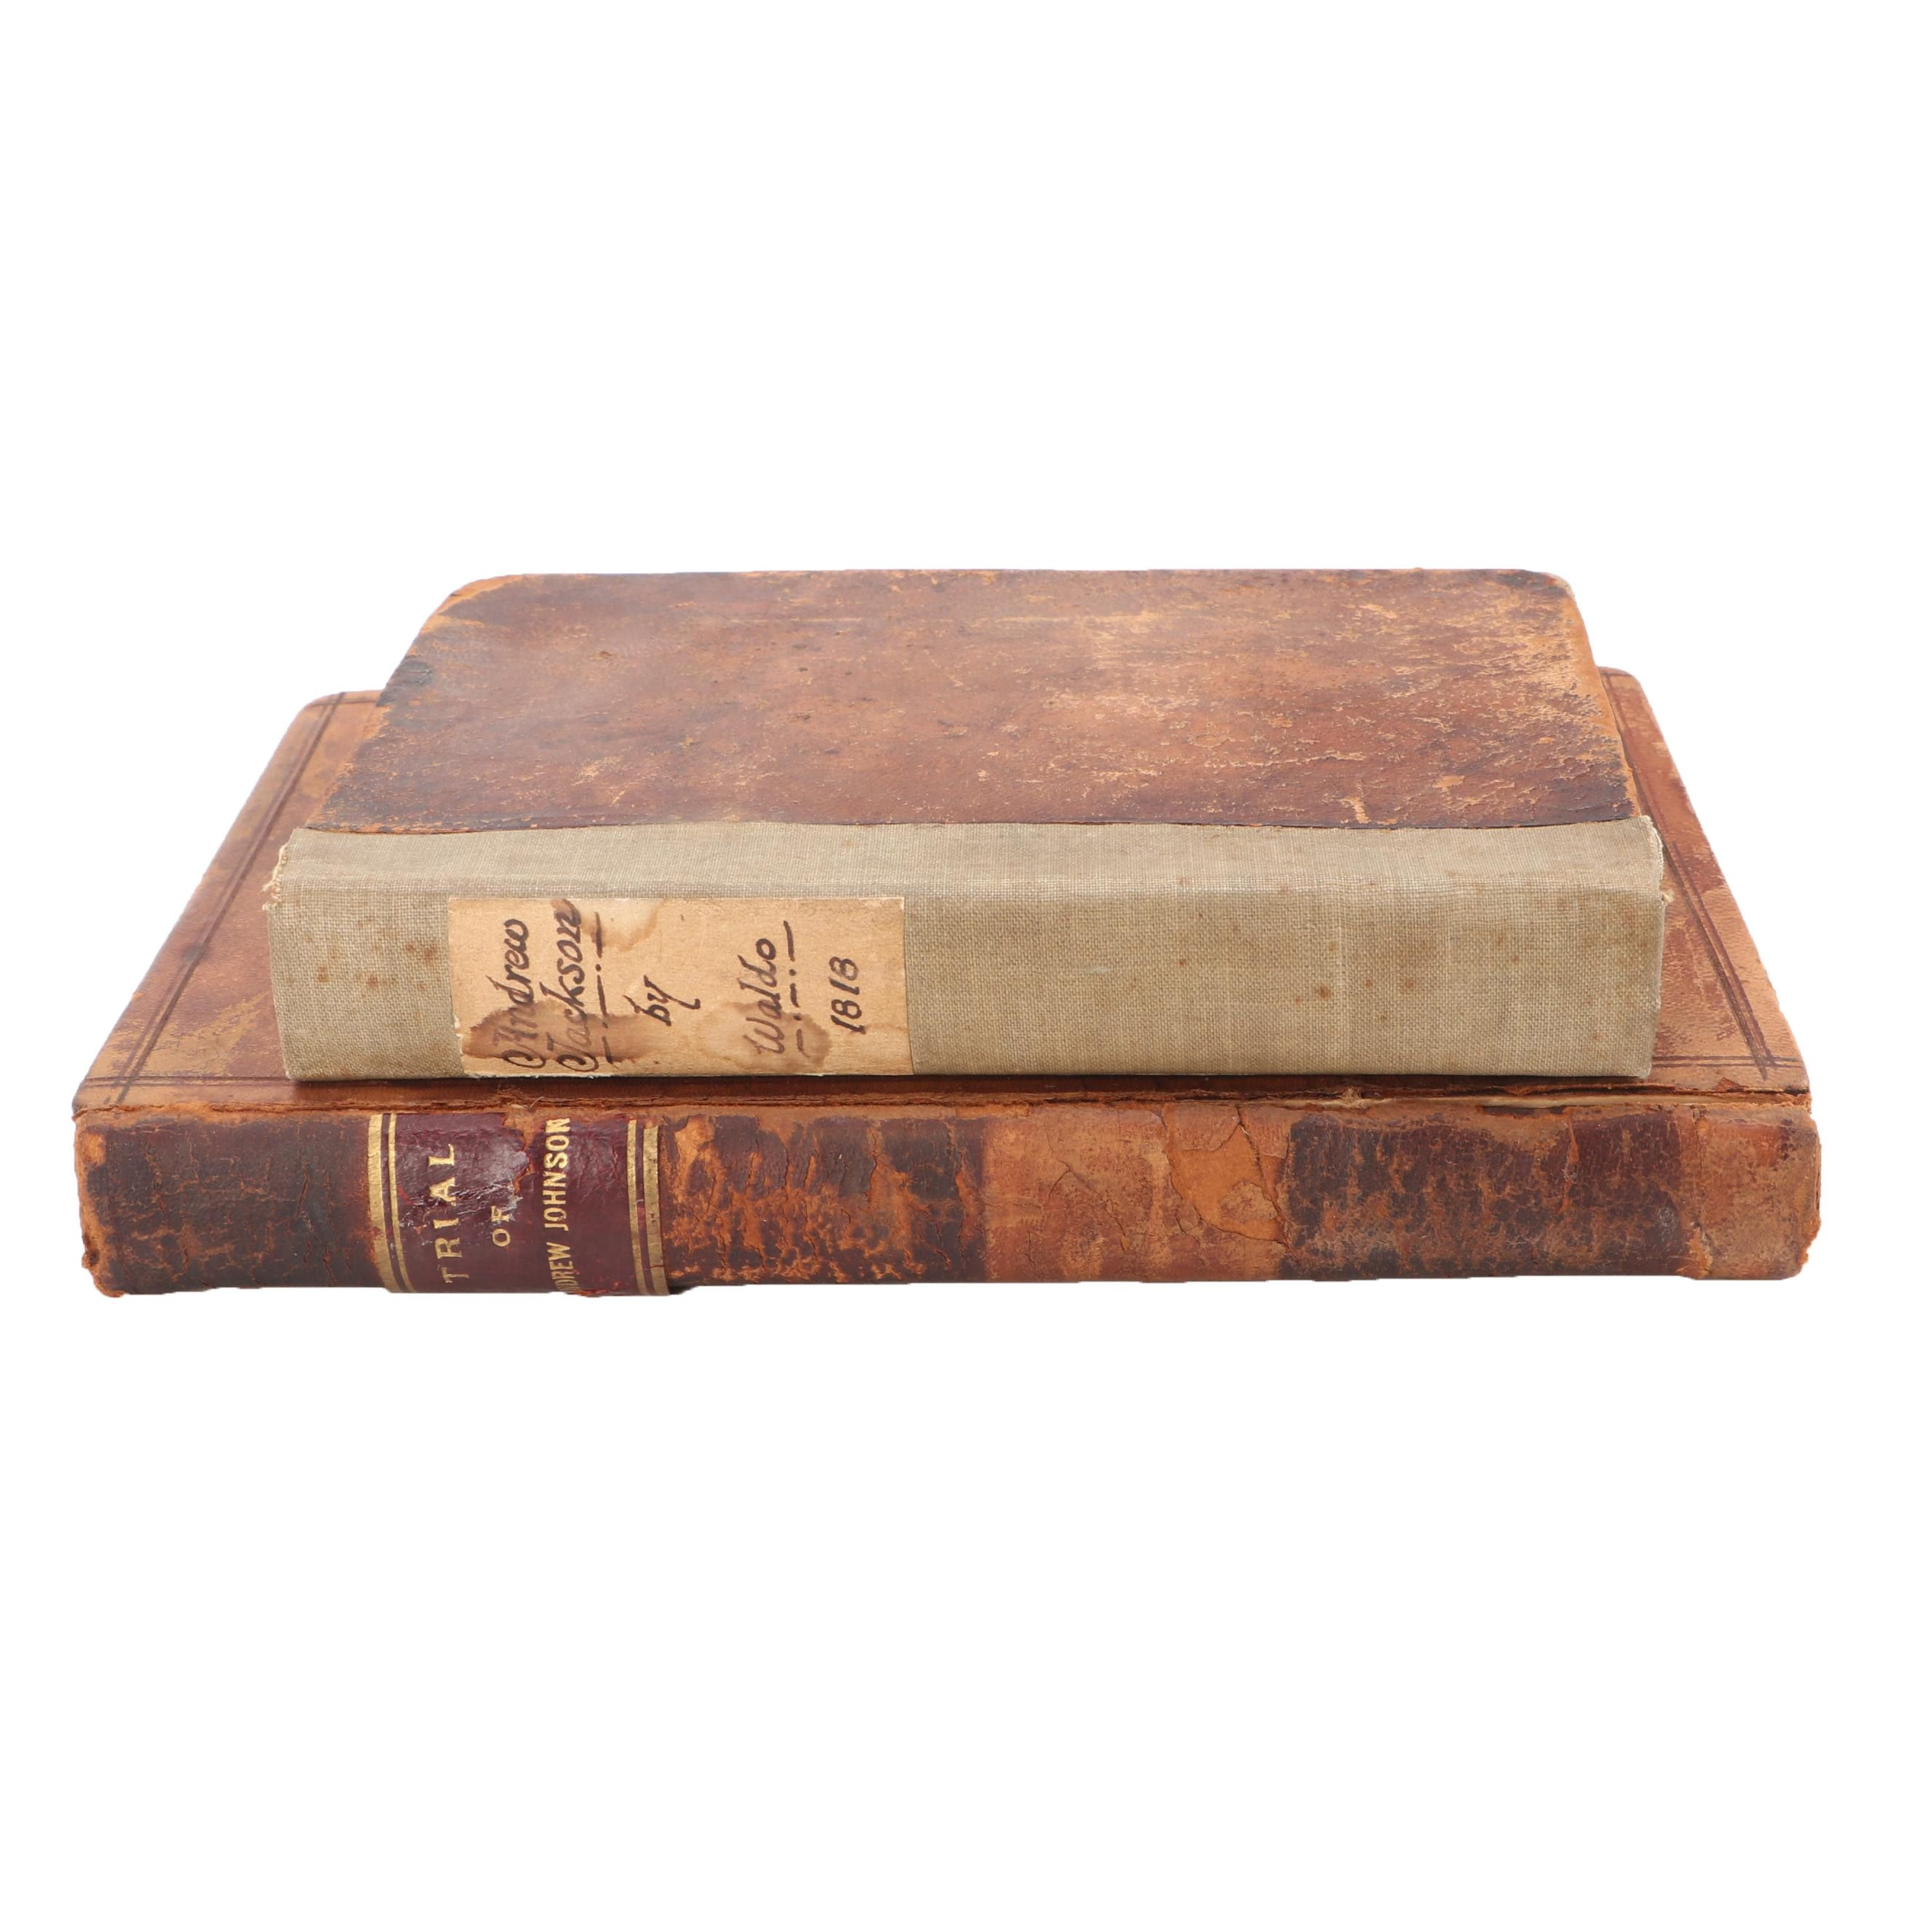 Two 19th Century Books on Presidents Andrew Jackson and Andrew Johnson